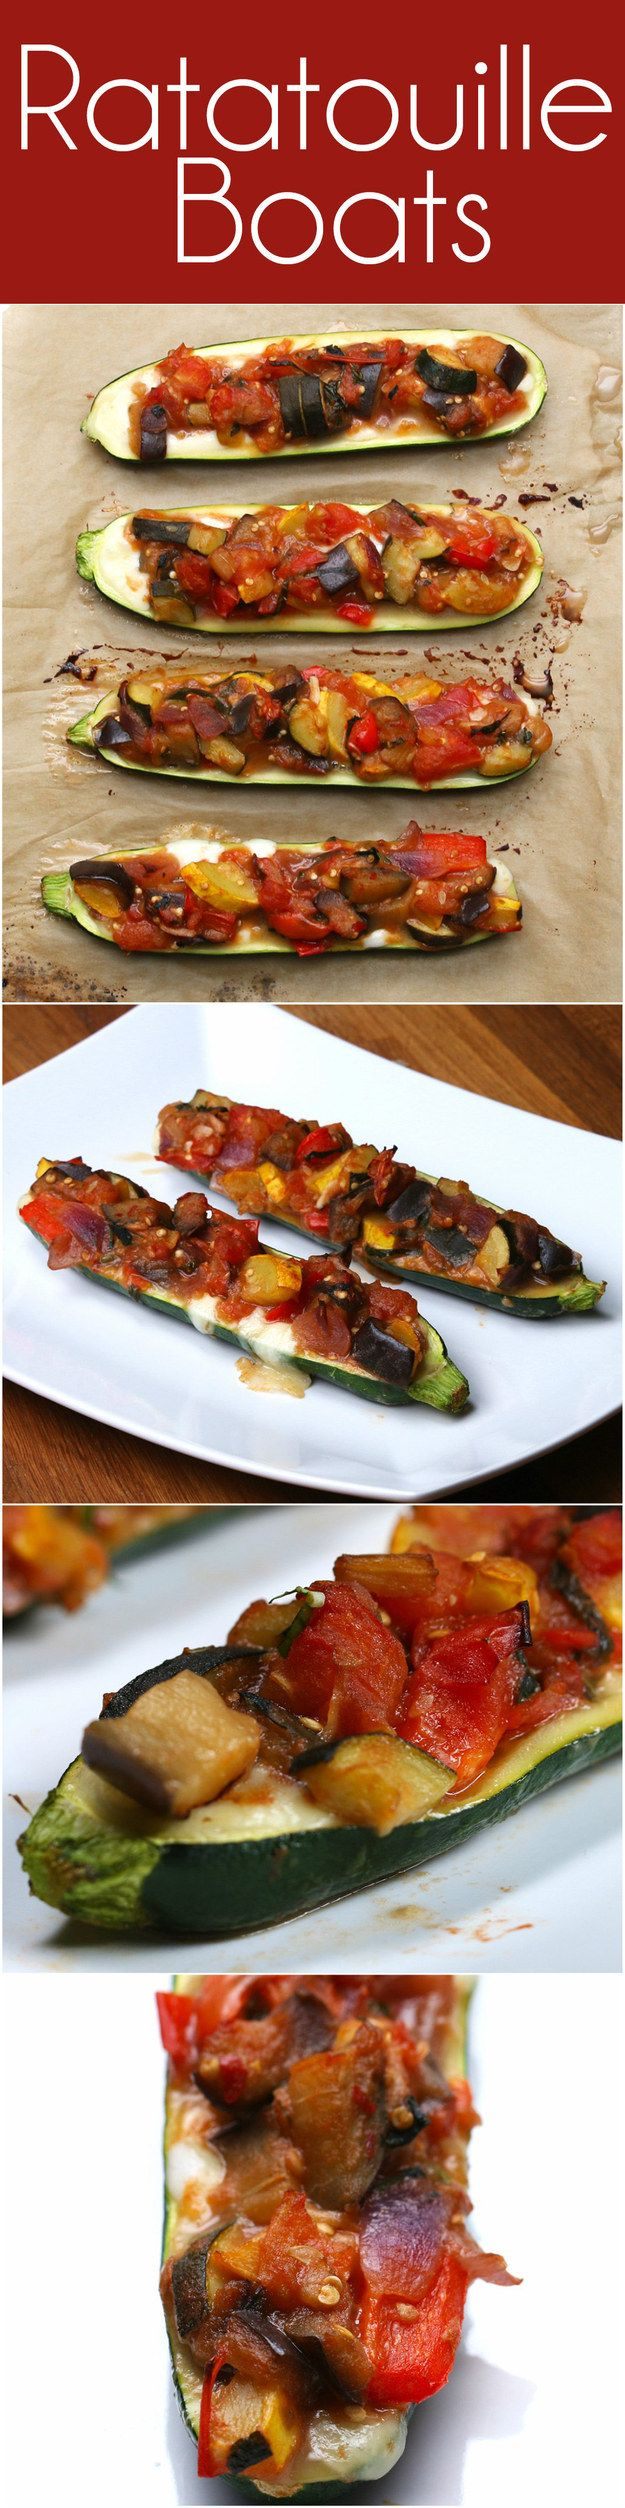 Ratatouille Boats | This Ratatouille Zucchini Boat Is Just What Your Belly Ordered